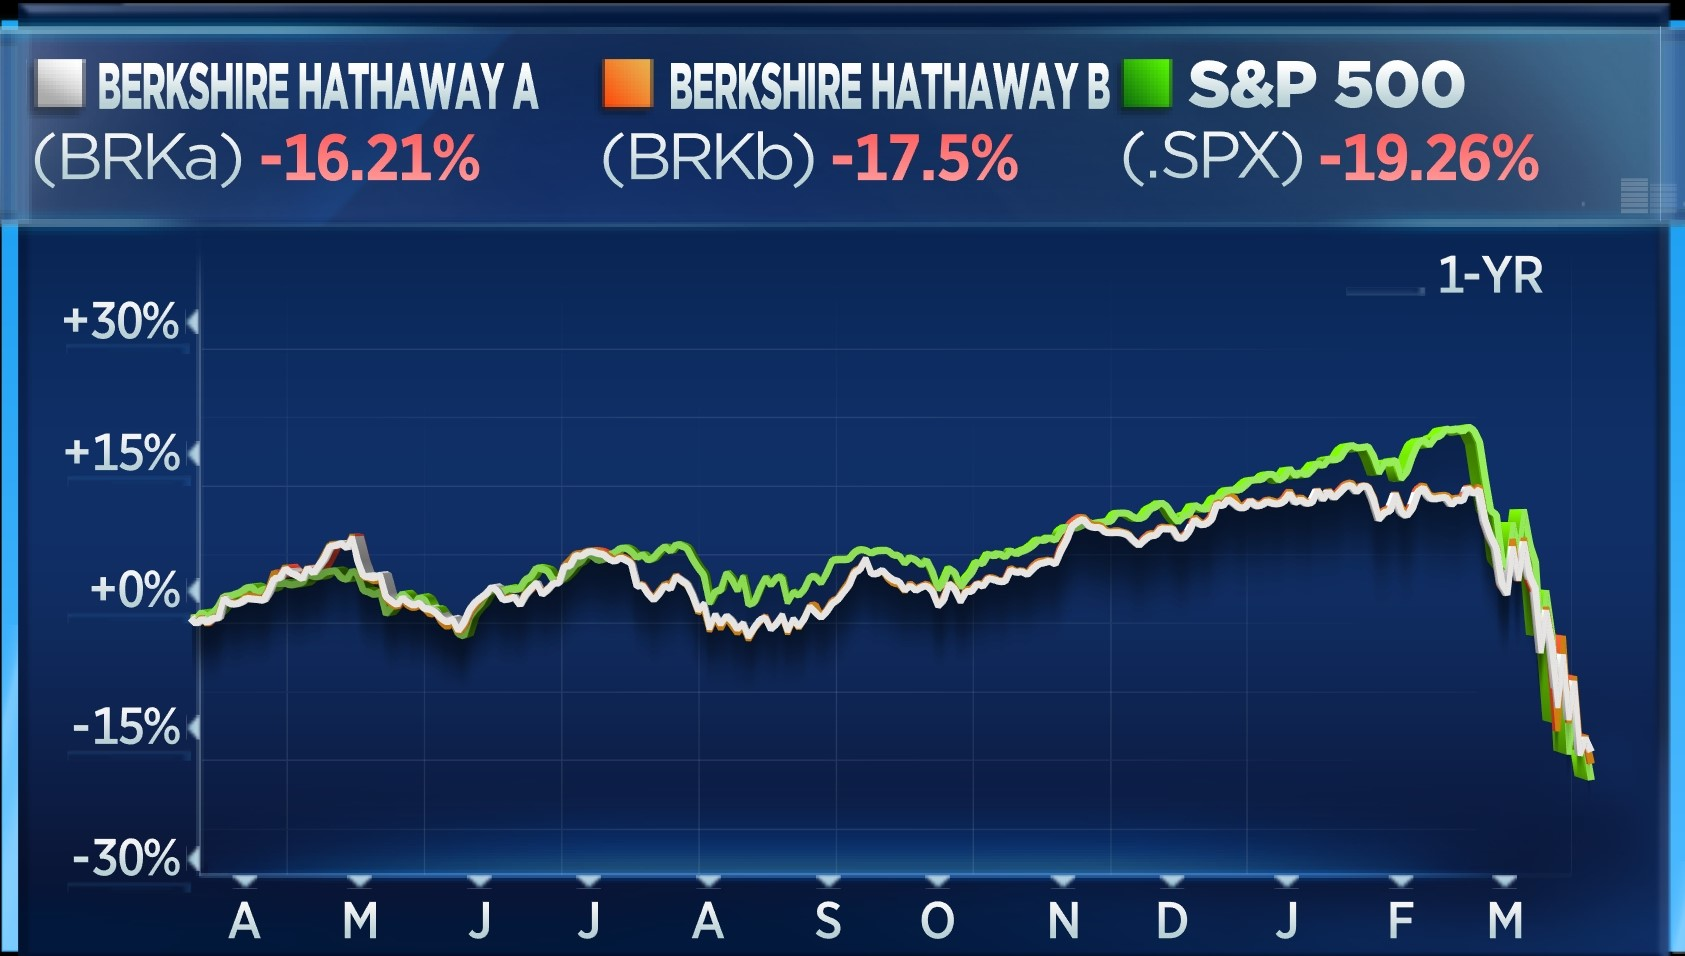 BRKA vs BRKB vs S&P - 1 year